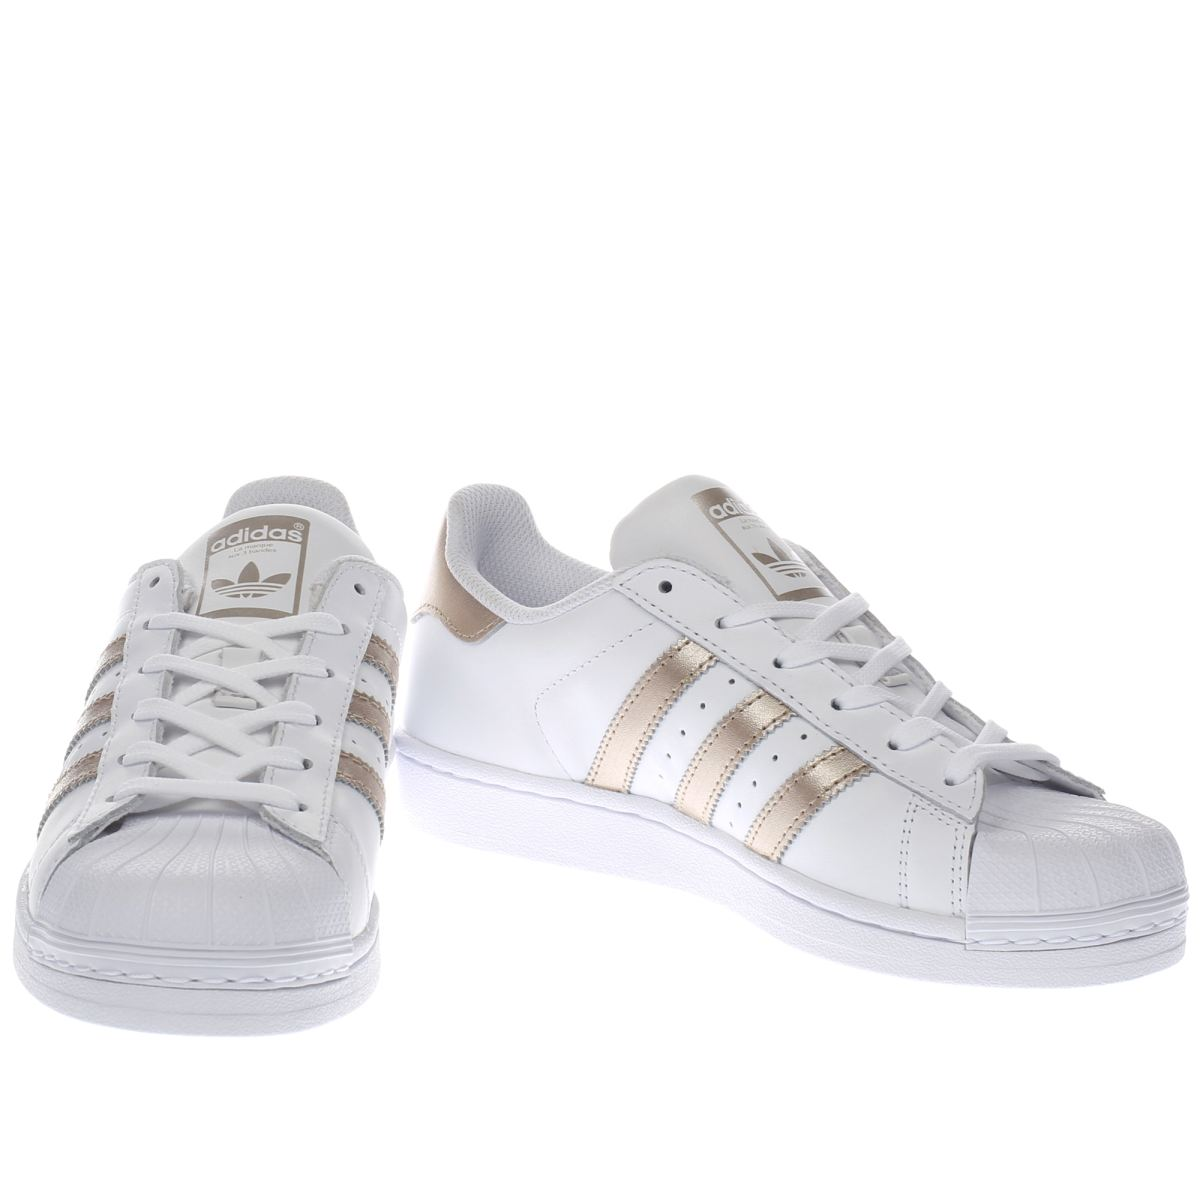 b8ab5ef3d20cfc Womens White   Rose Gold Adidas Superstar Trainers